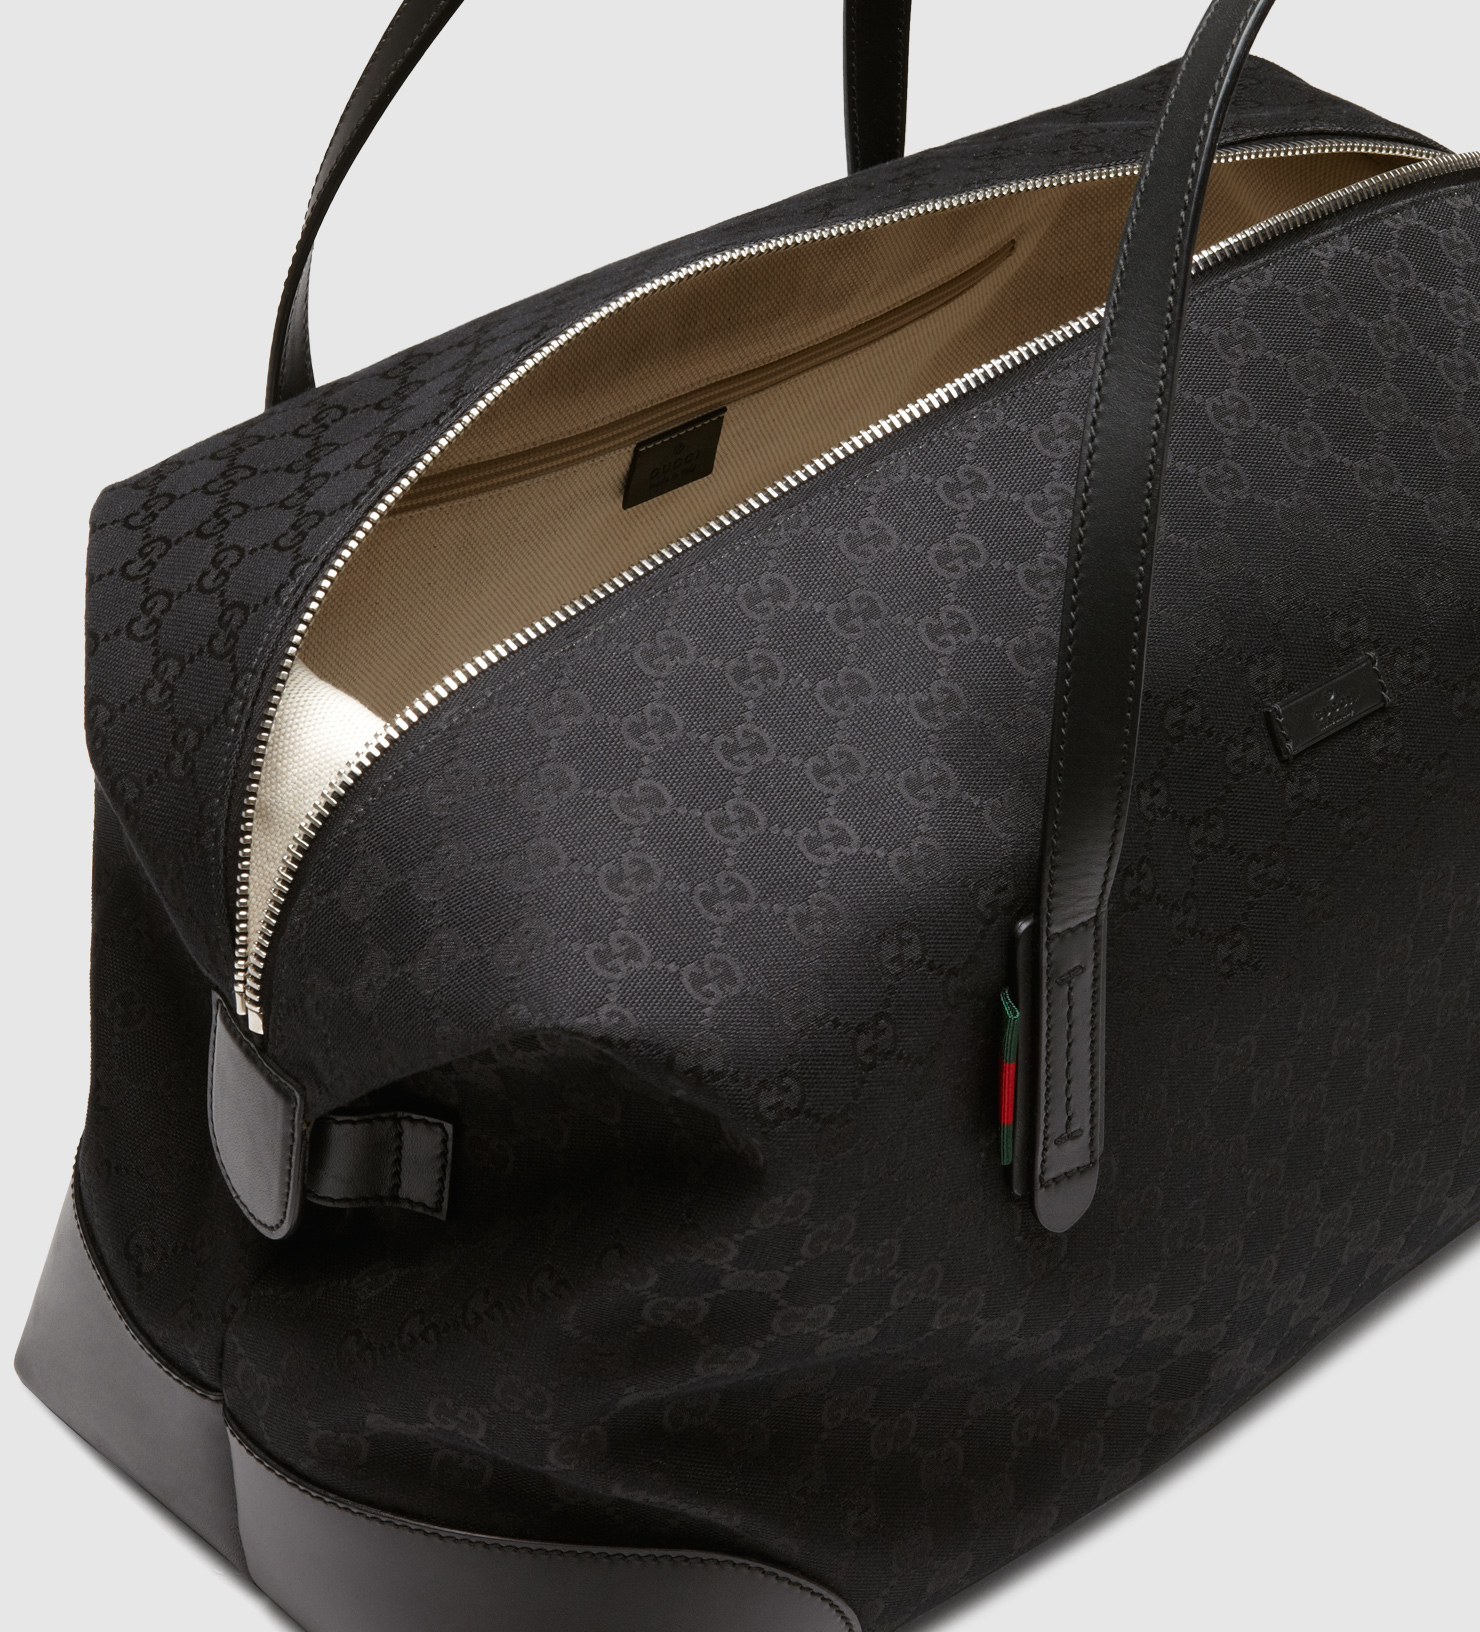 c5a654f1463a Lyst - Gucci Original Gg Canvas Carry-on Duffle Bag in Black for Men